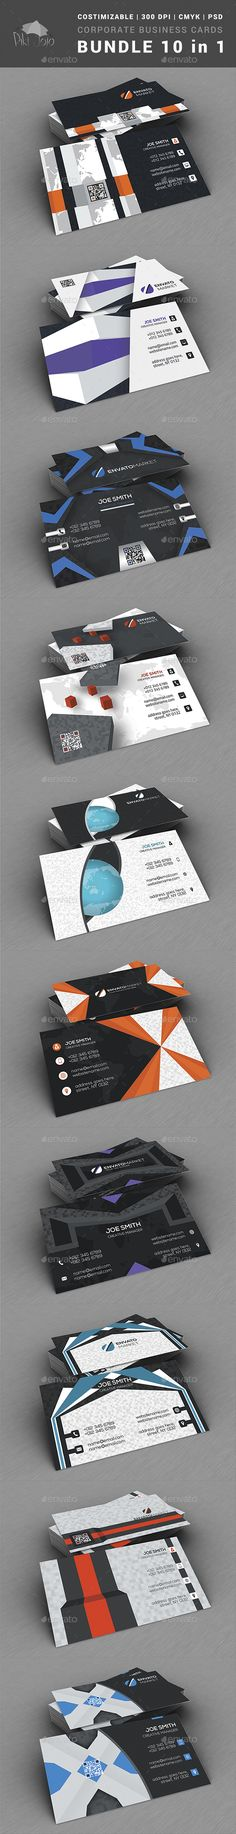 Fire safety service business card template photoshop psd template corporate business cards bundle 10 in 1 business cards print templates download here https reheart Images